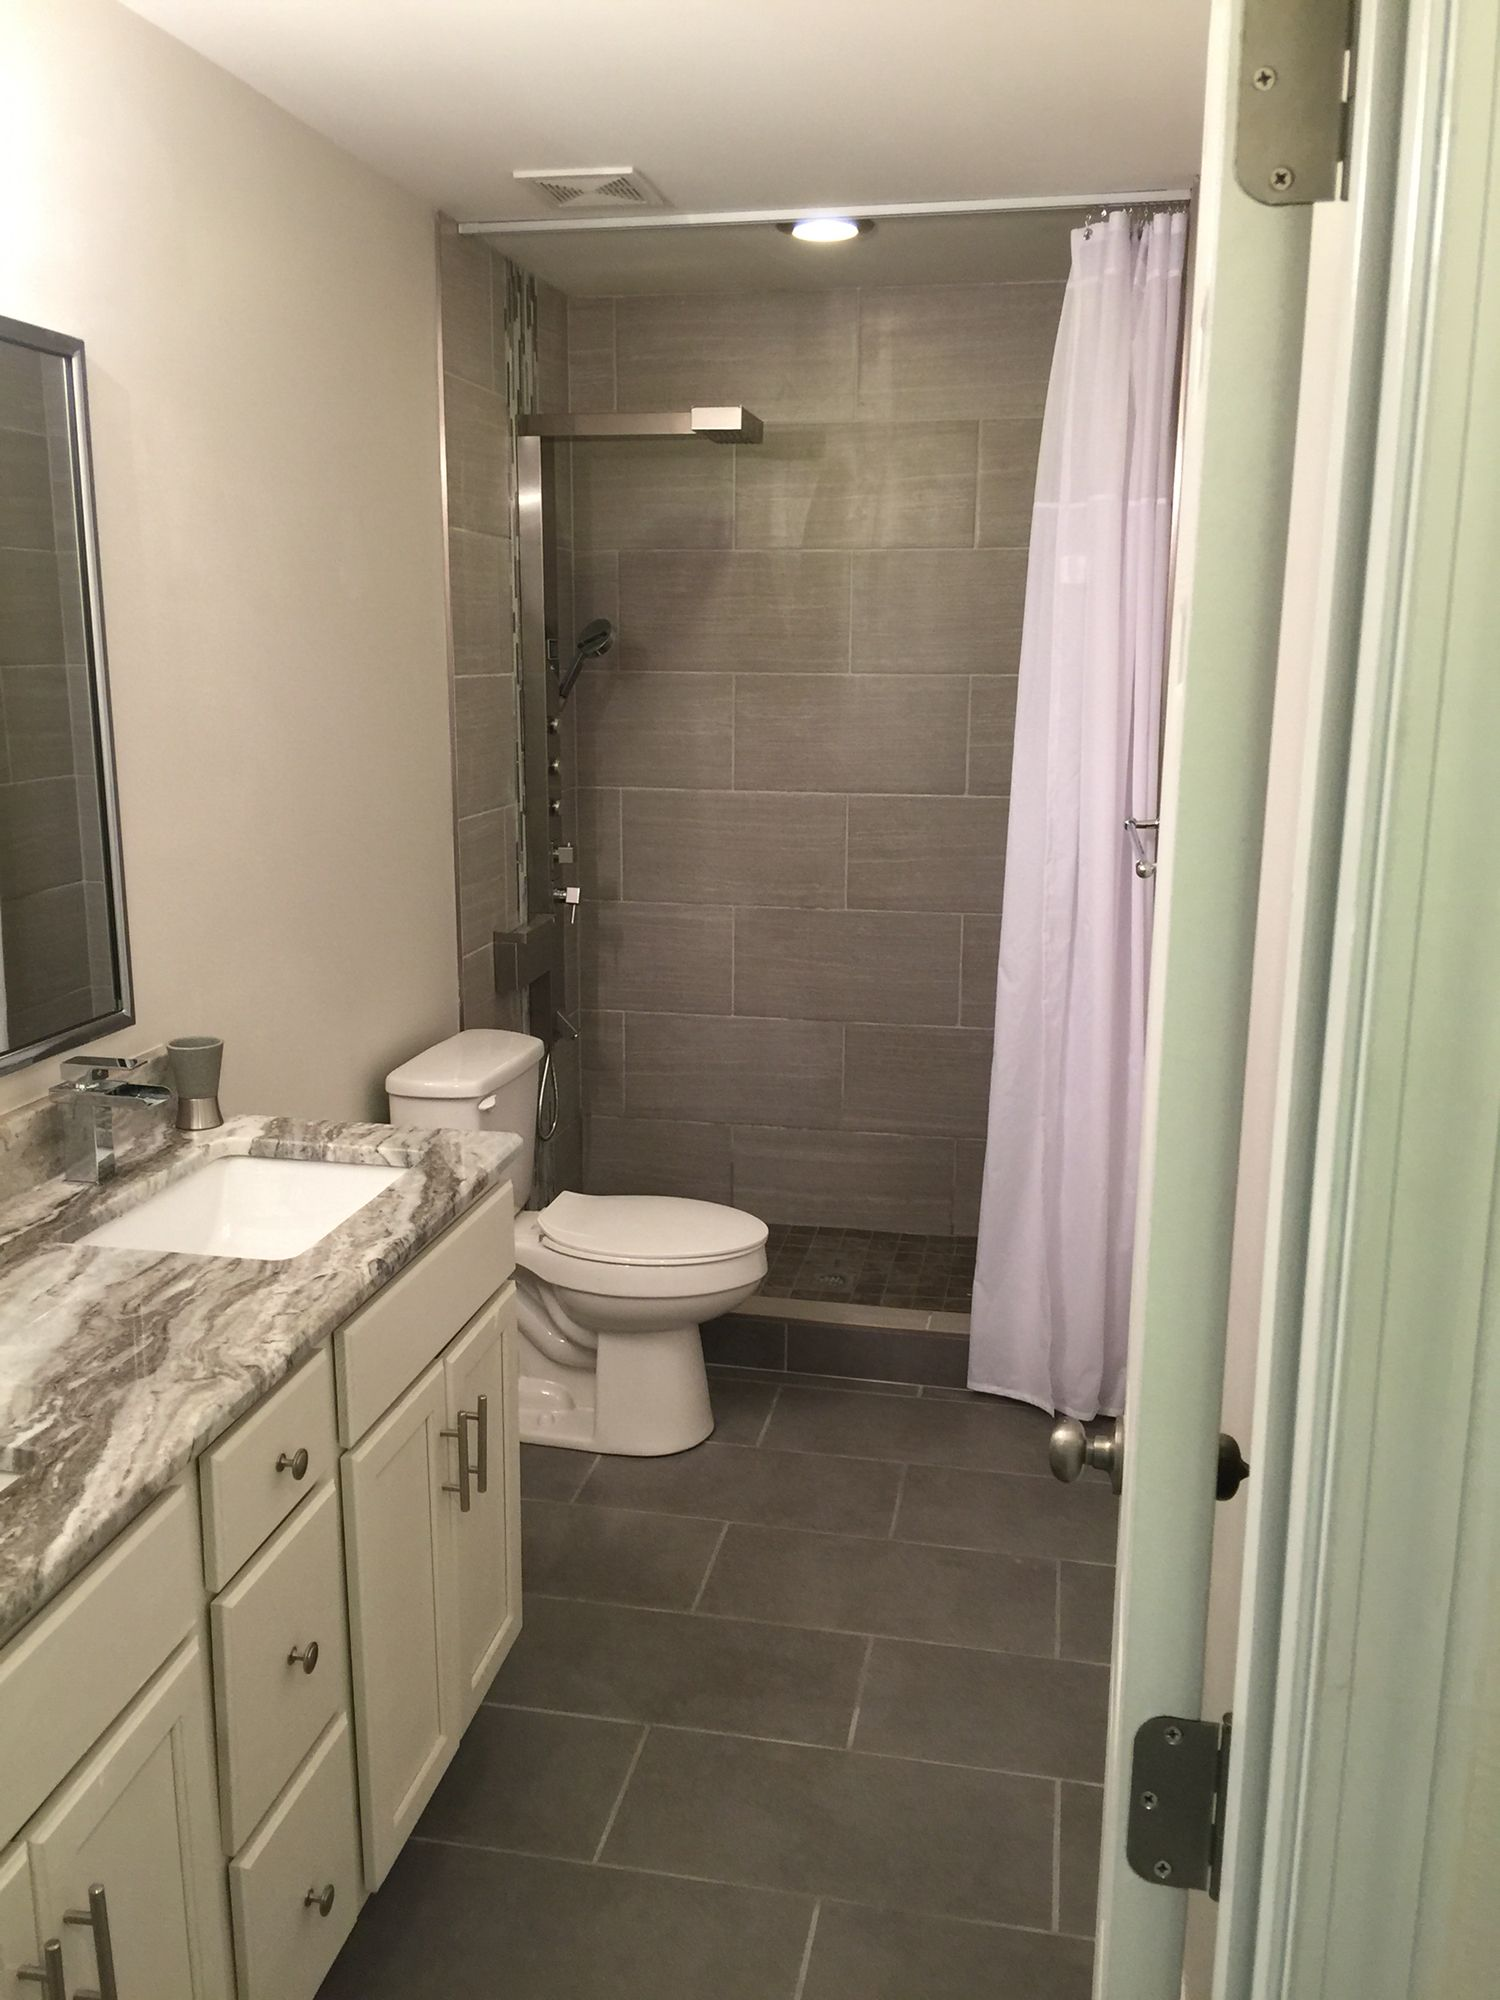 Bathroom Remodel Using 12x24 Leonia Silver Porcelain Tile, Trax Shower  Curtain, Akdy Waterfall Shower